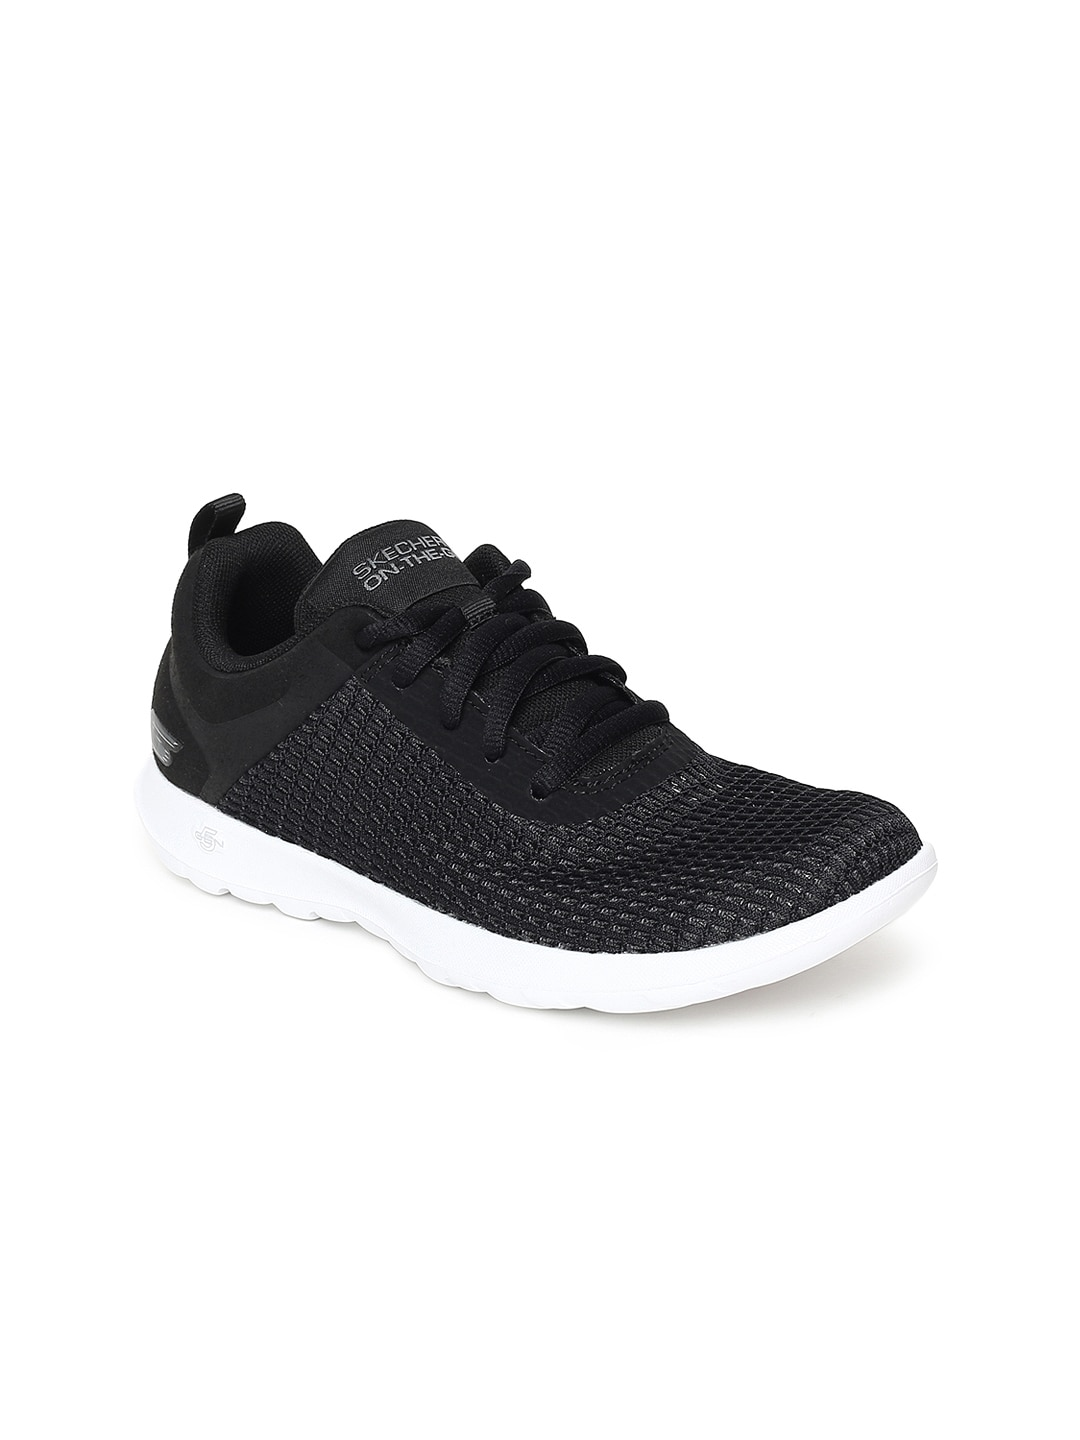 a66eeb8516b5 Skechers - Buy Skechers Footwear Online at Best Prices